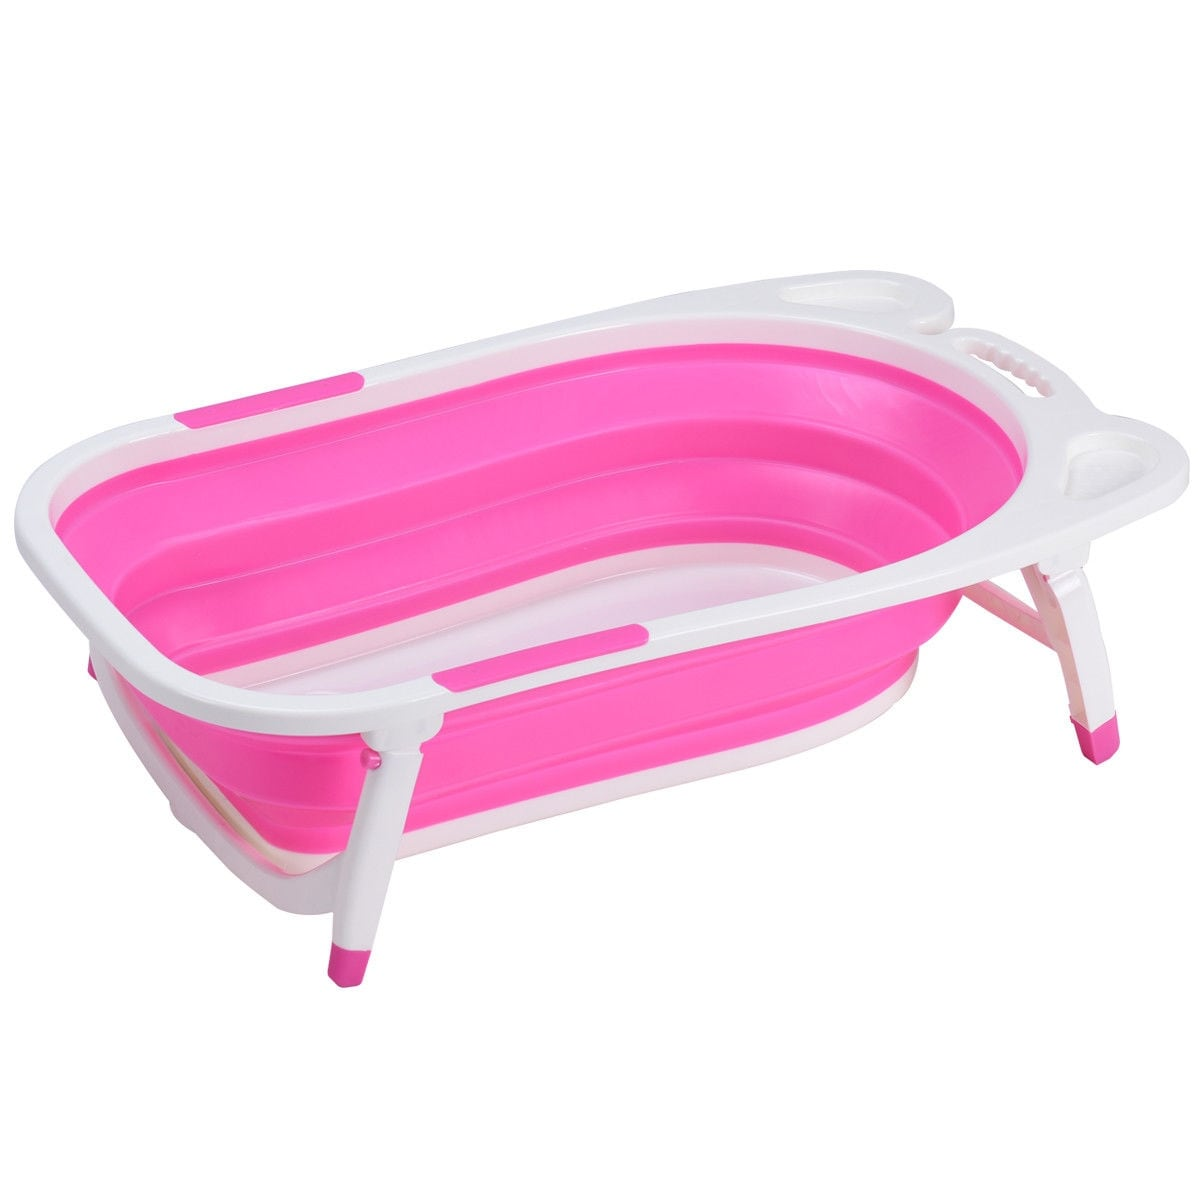 Gymax Pink Baby Folding Bathtub Infant Collapsible Portable Shower ...